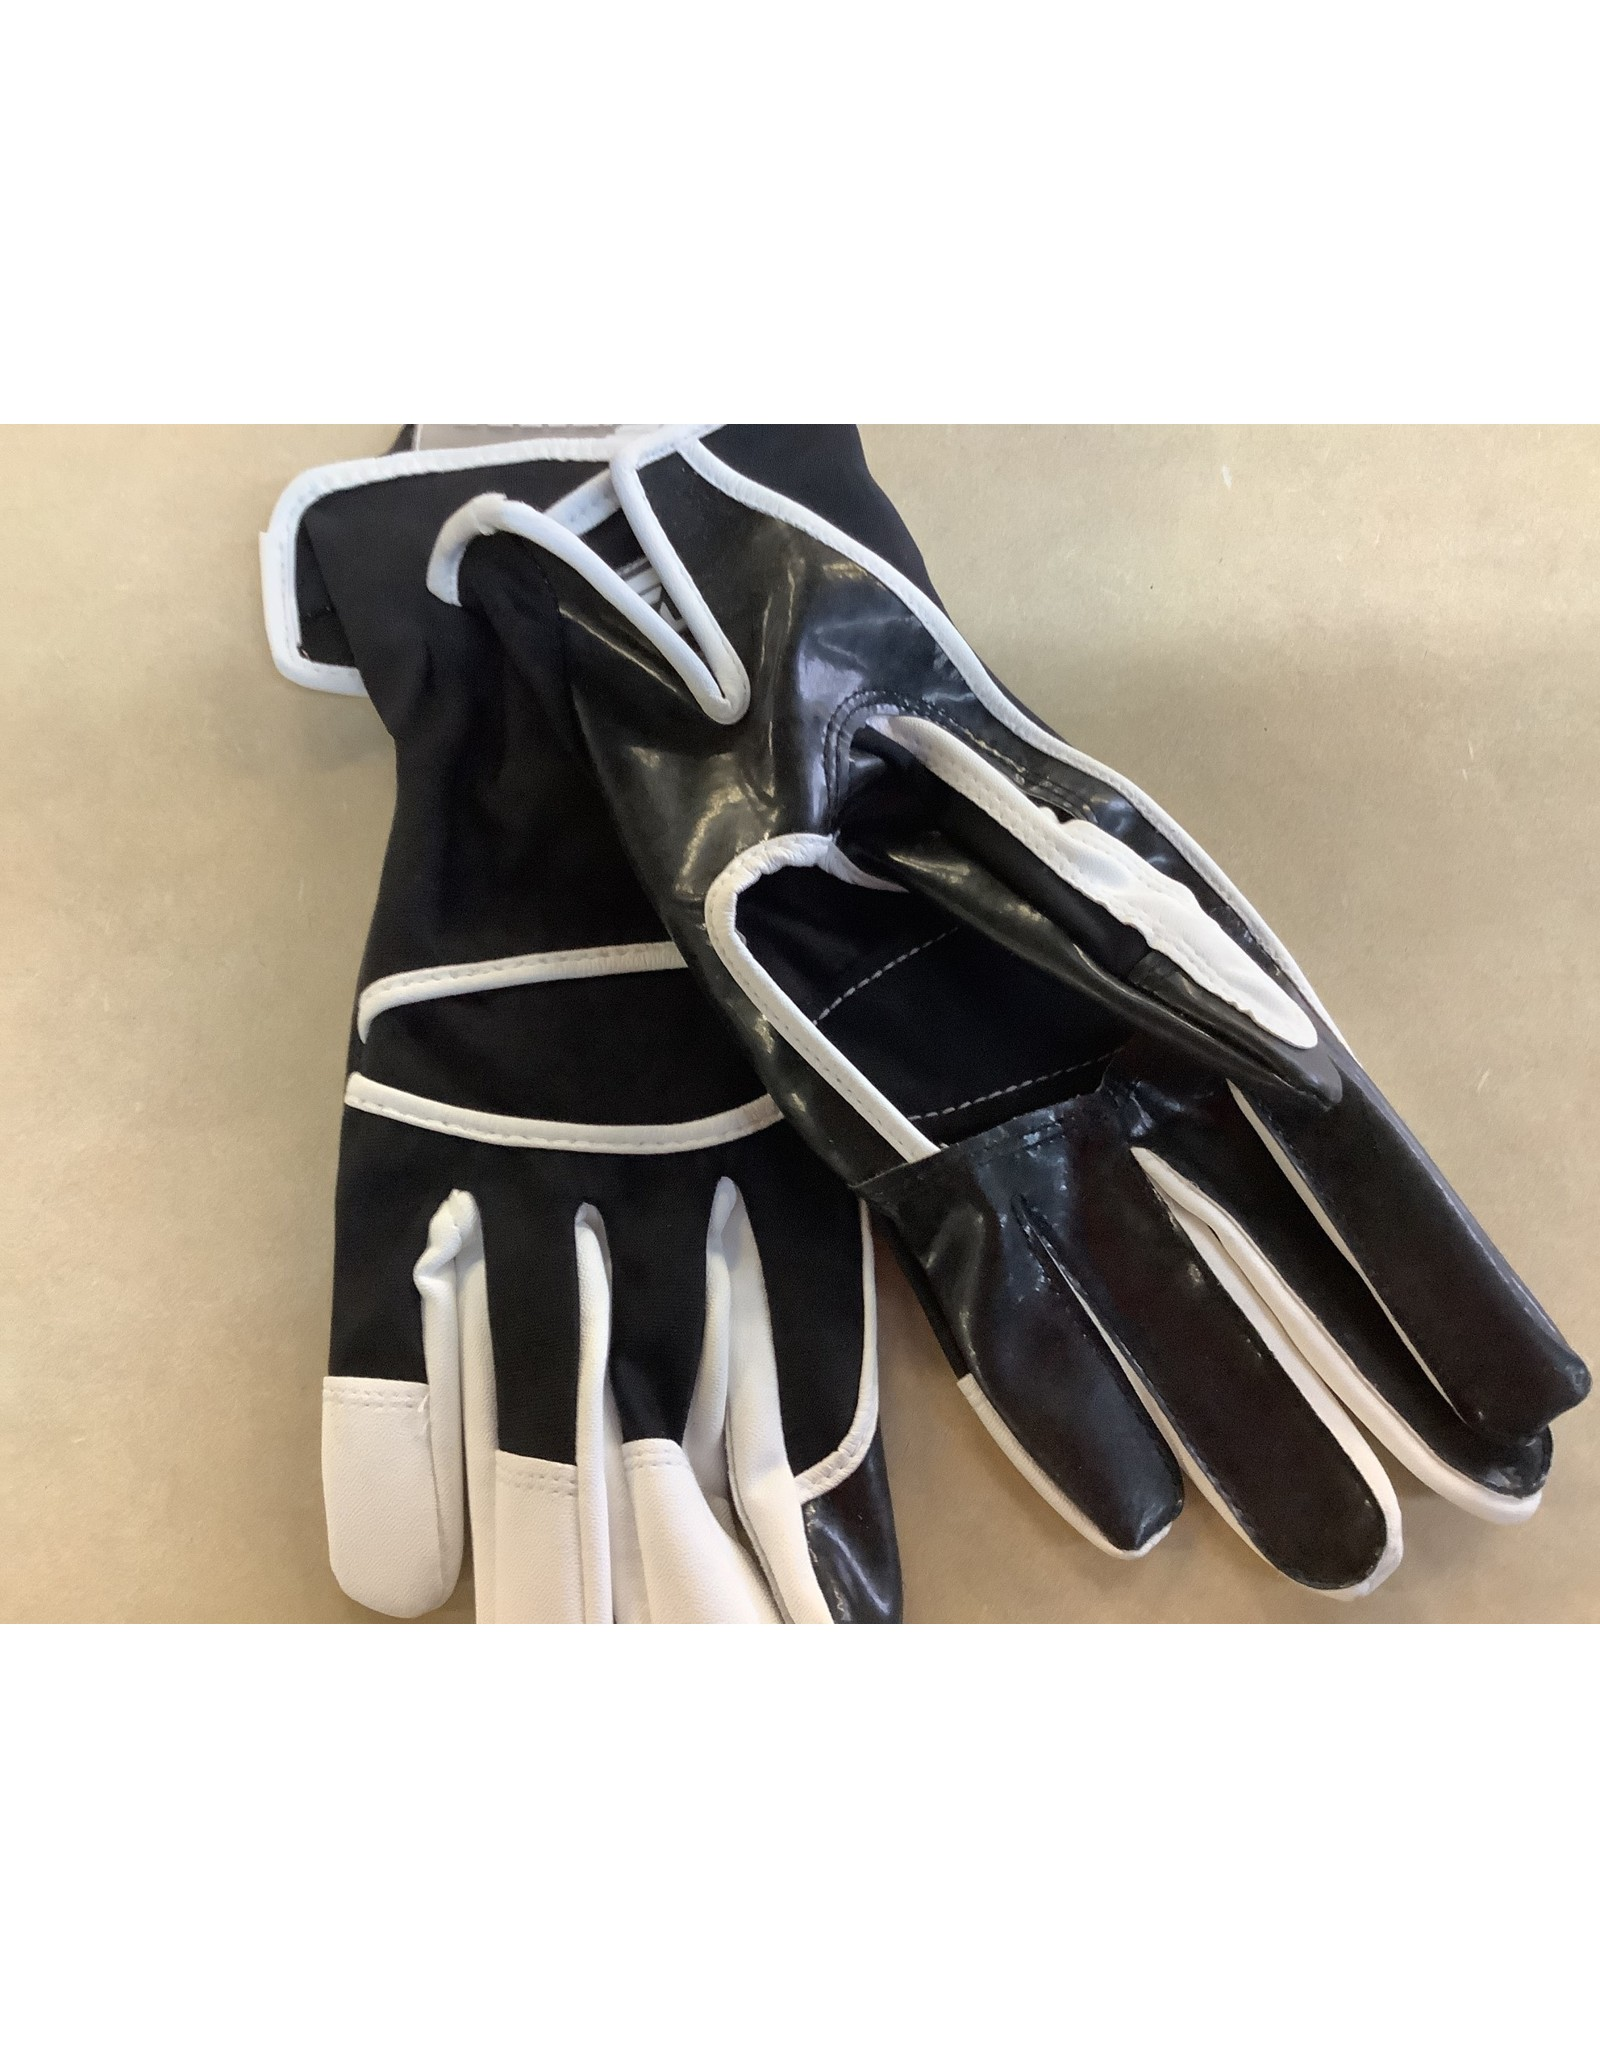 Cutter Cutters The Naked Receiver Gloves - XL